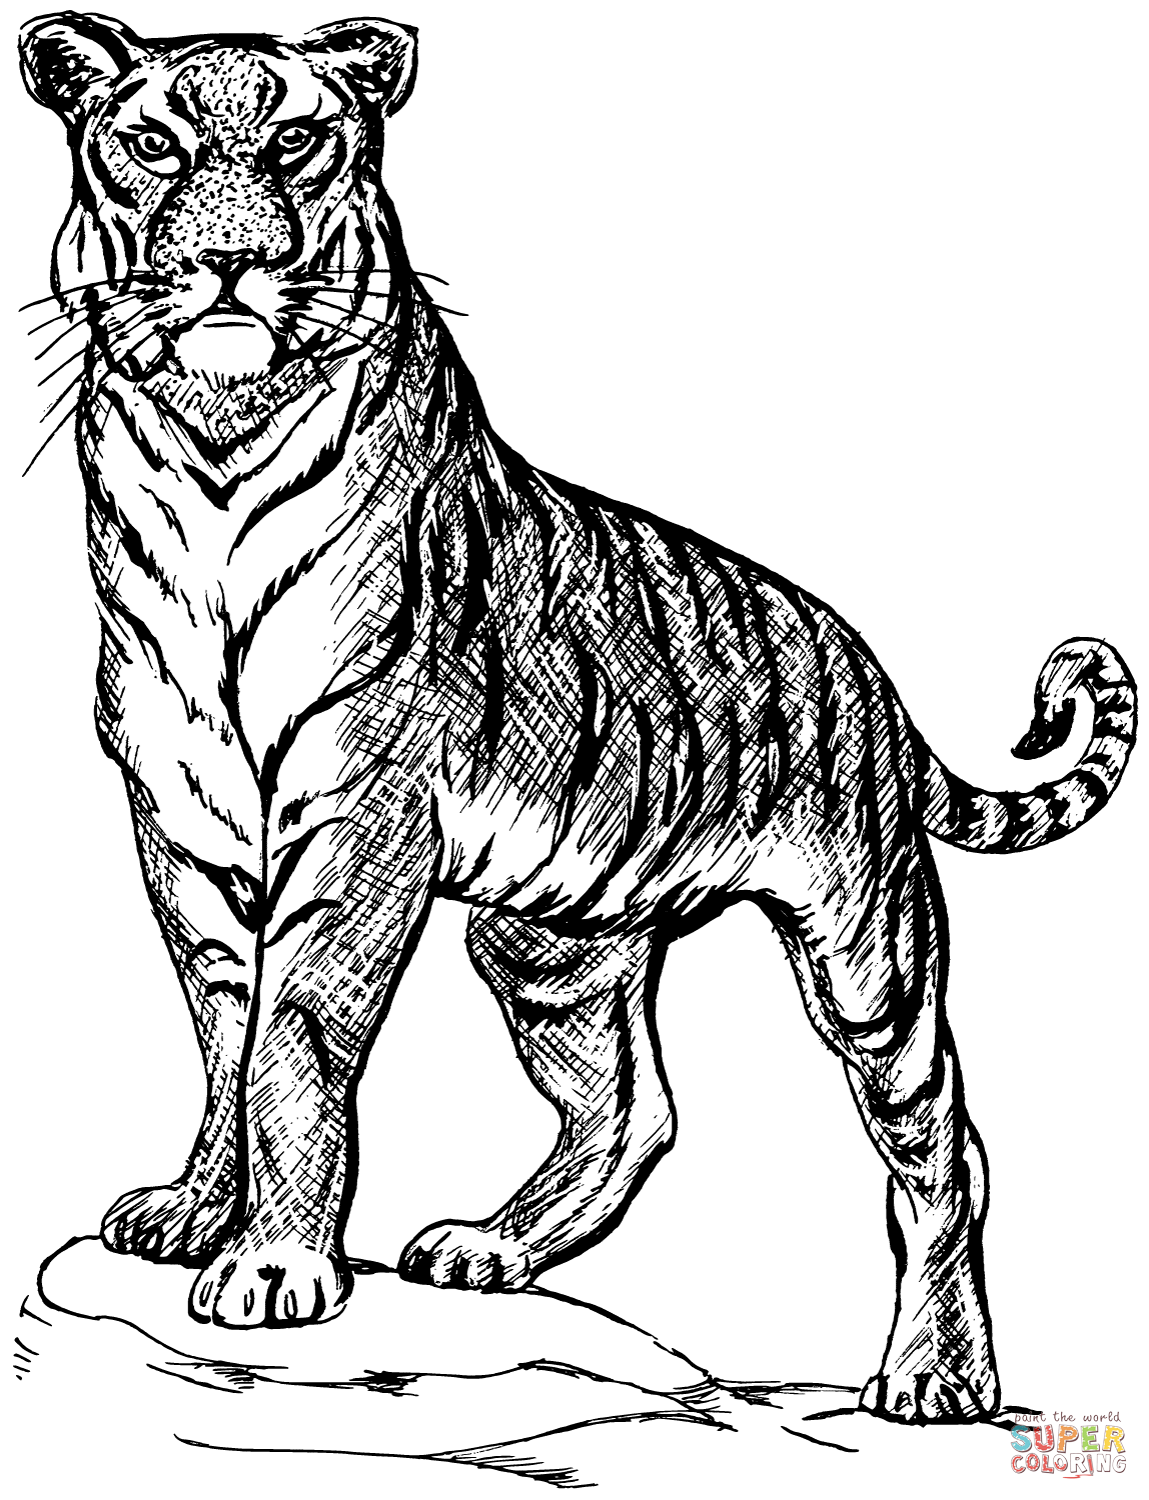 tiger pictures to color tiger coloring pages to tiger pictures color